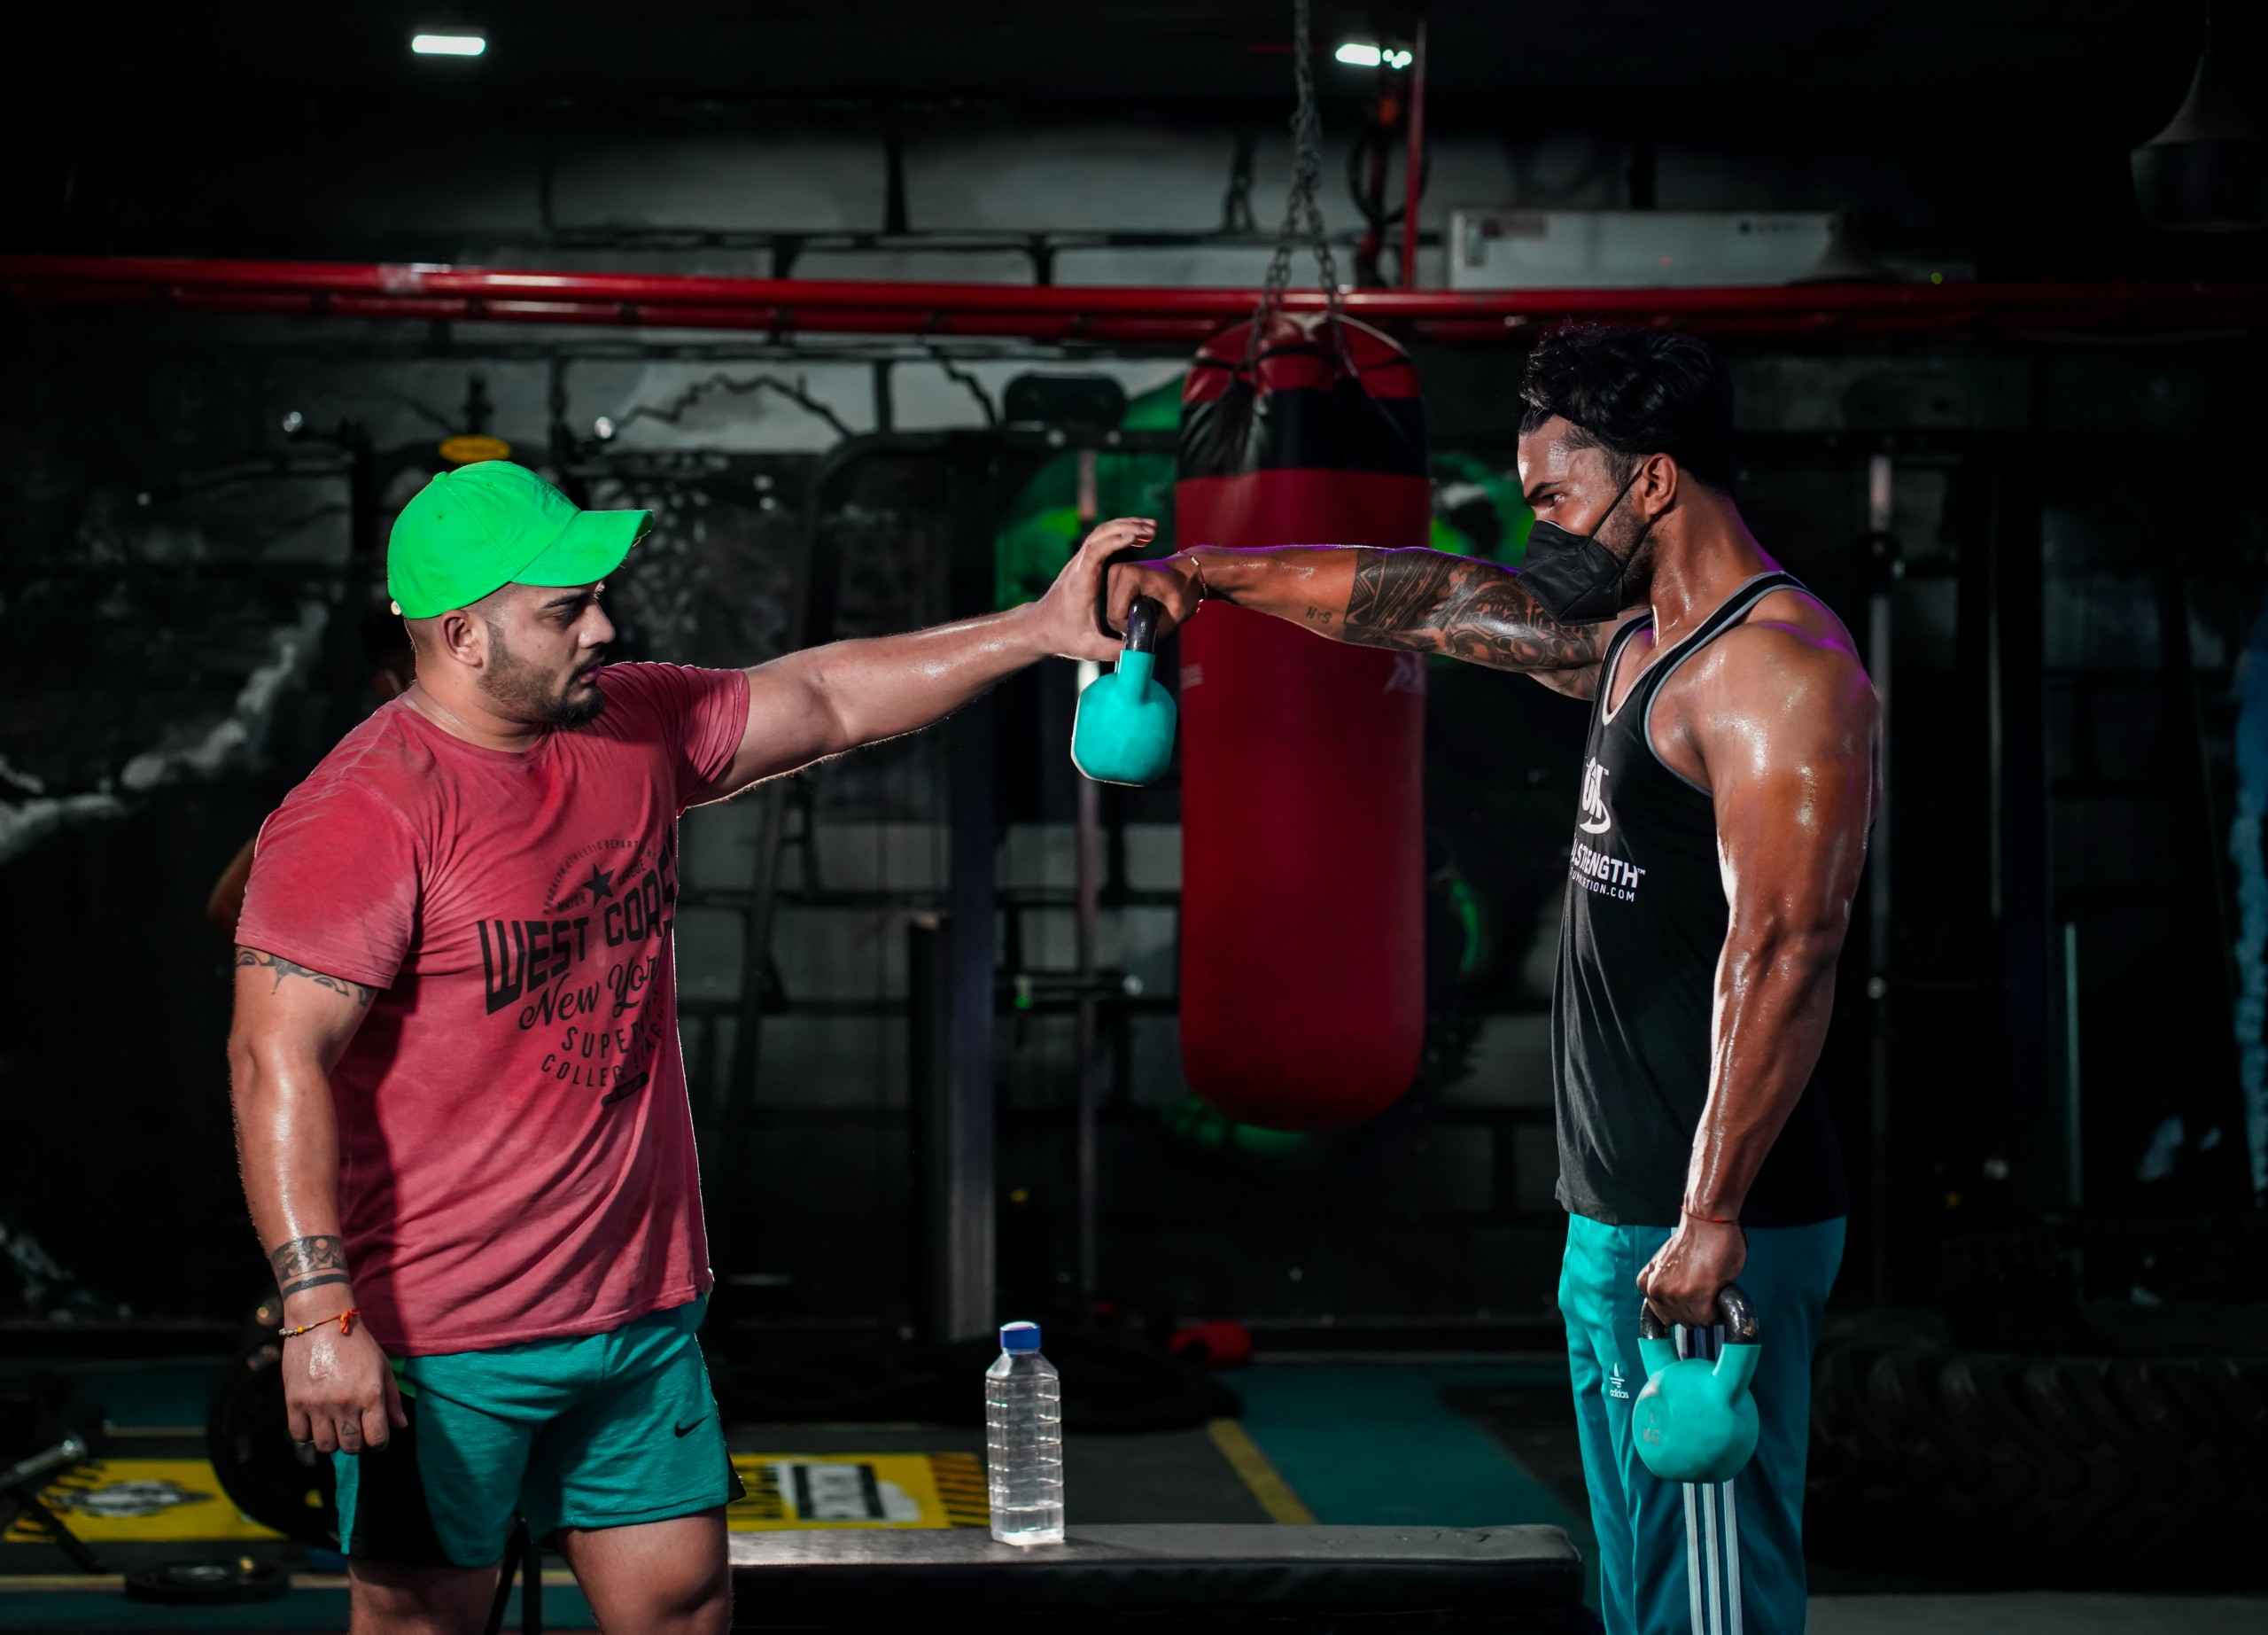 Bodybuilders at a Gym Face off